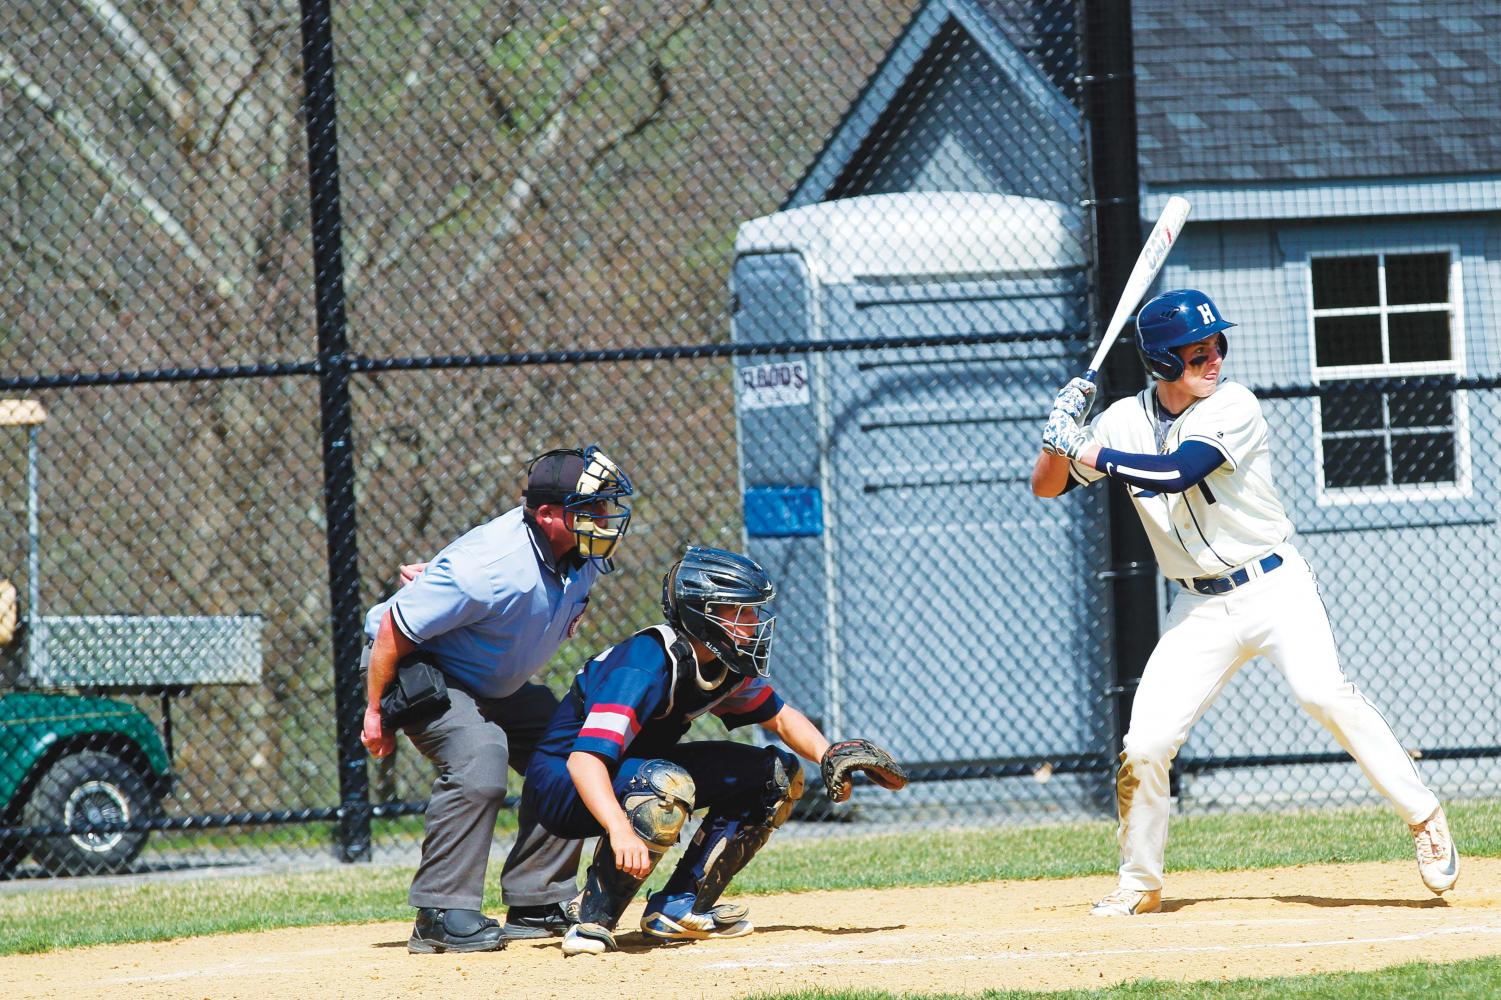 Tommy Lewis '19 anticipates a pitch in a game against Kent on May 1.